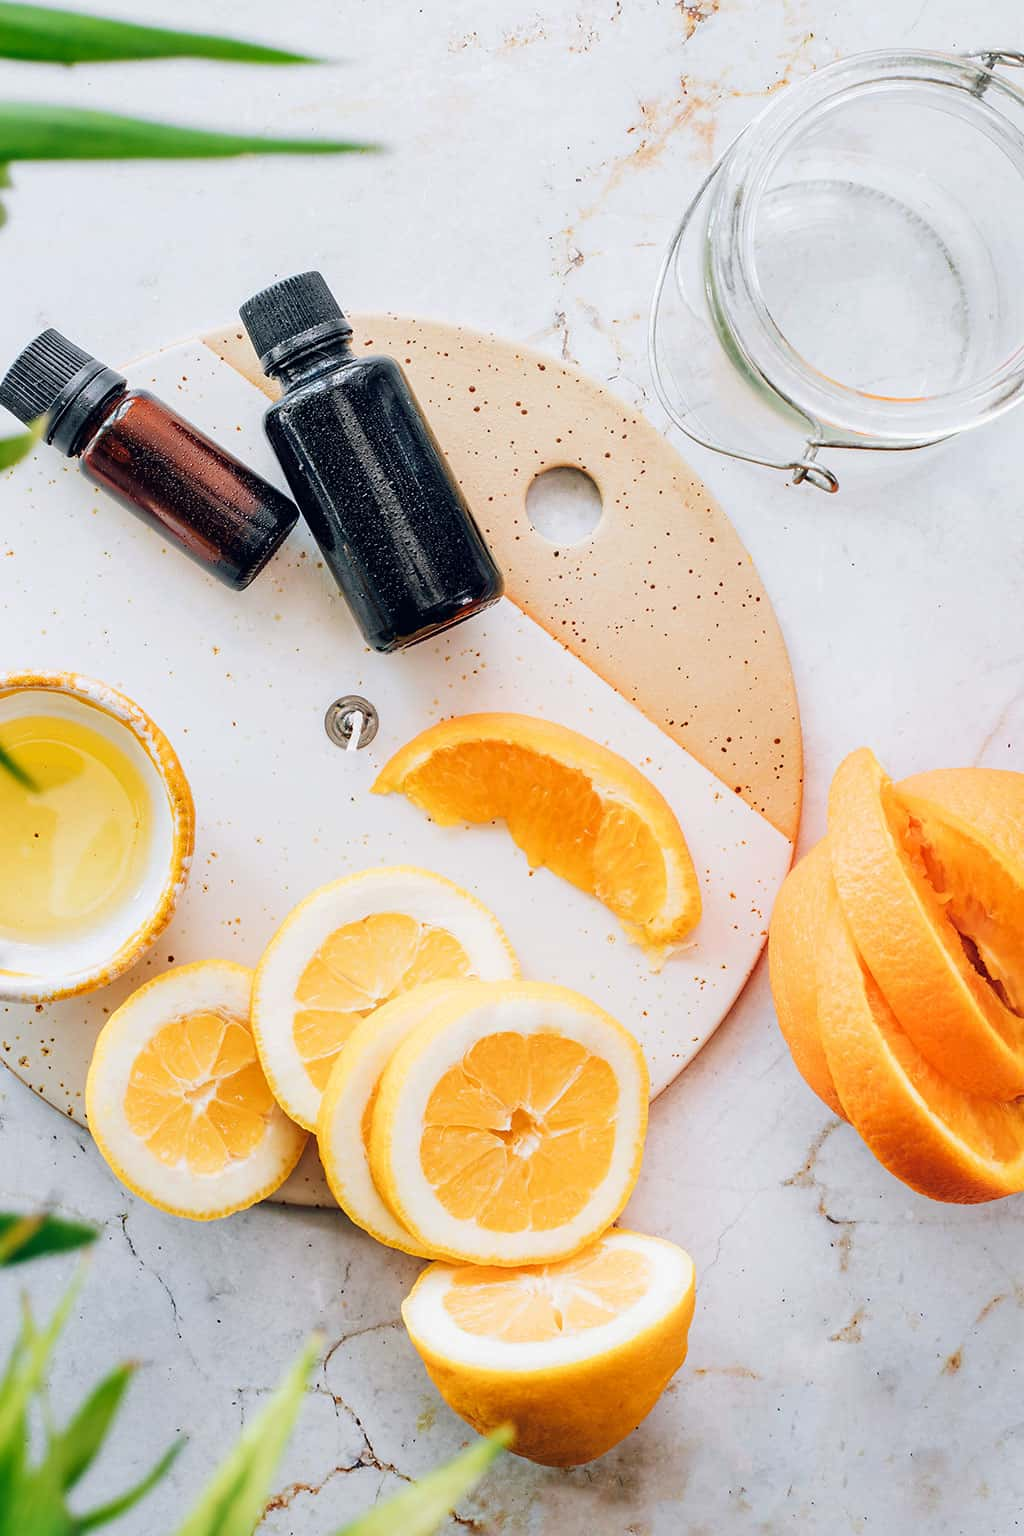 Ingredients for making easy candles with oil, fruit and mason jars